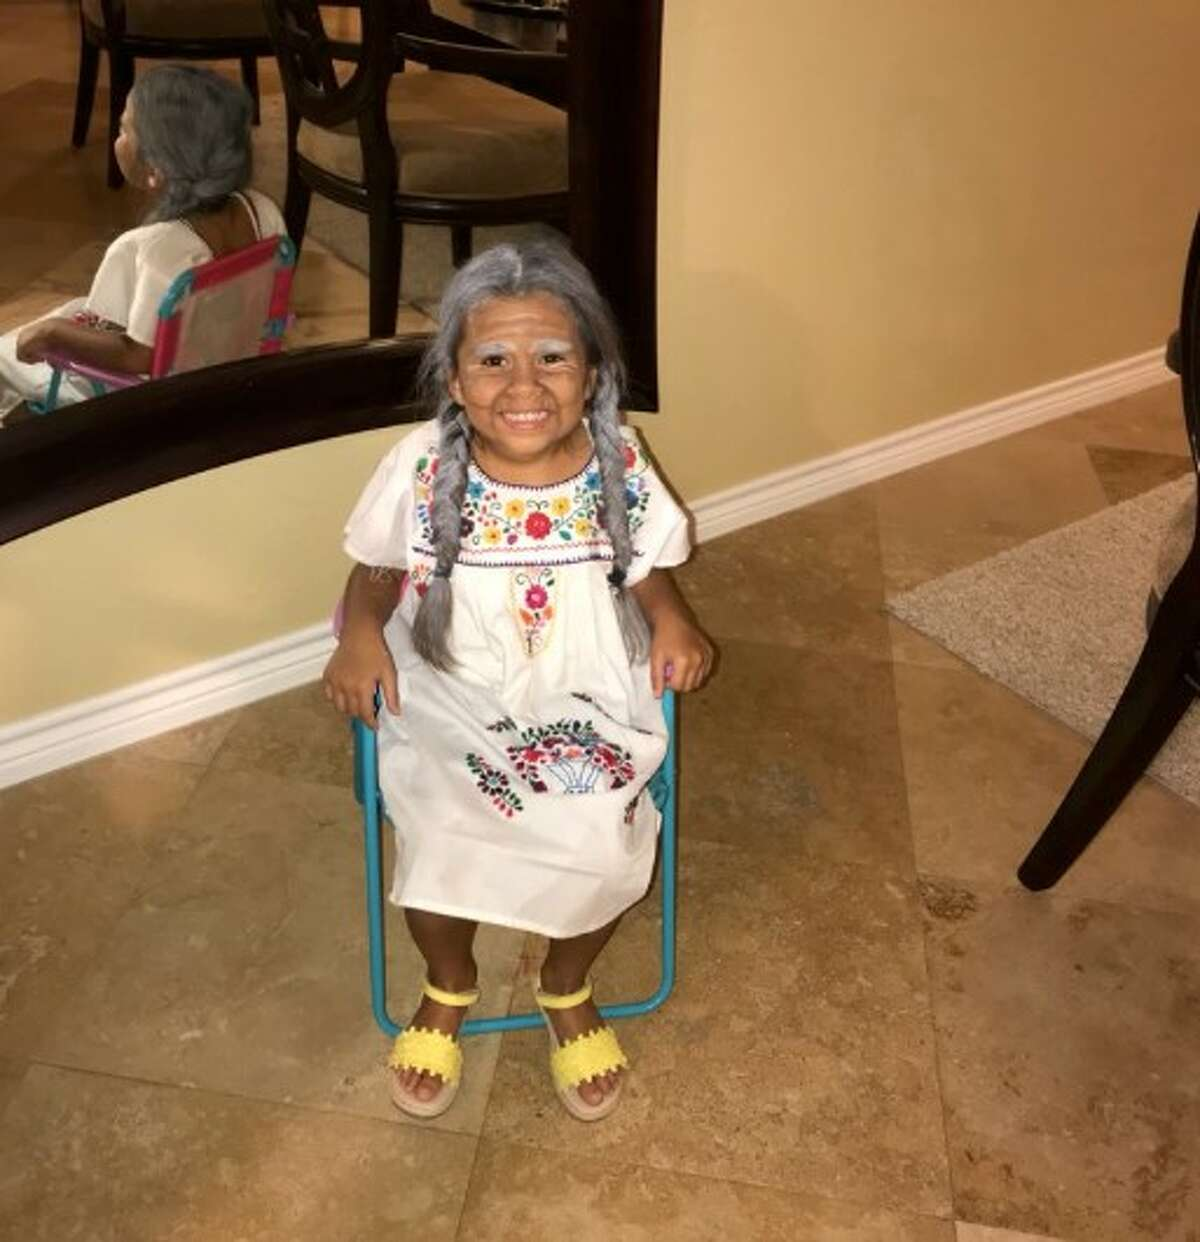 One young Houston girl is melting hearts after her brother shared photos on Twitter of her dressed up as the character 'Mama Coco' from Pixar's hit film 'Coco.' >> One baby, 31 costumes and one VERY extra mom...